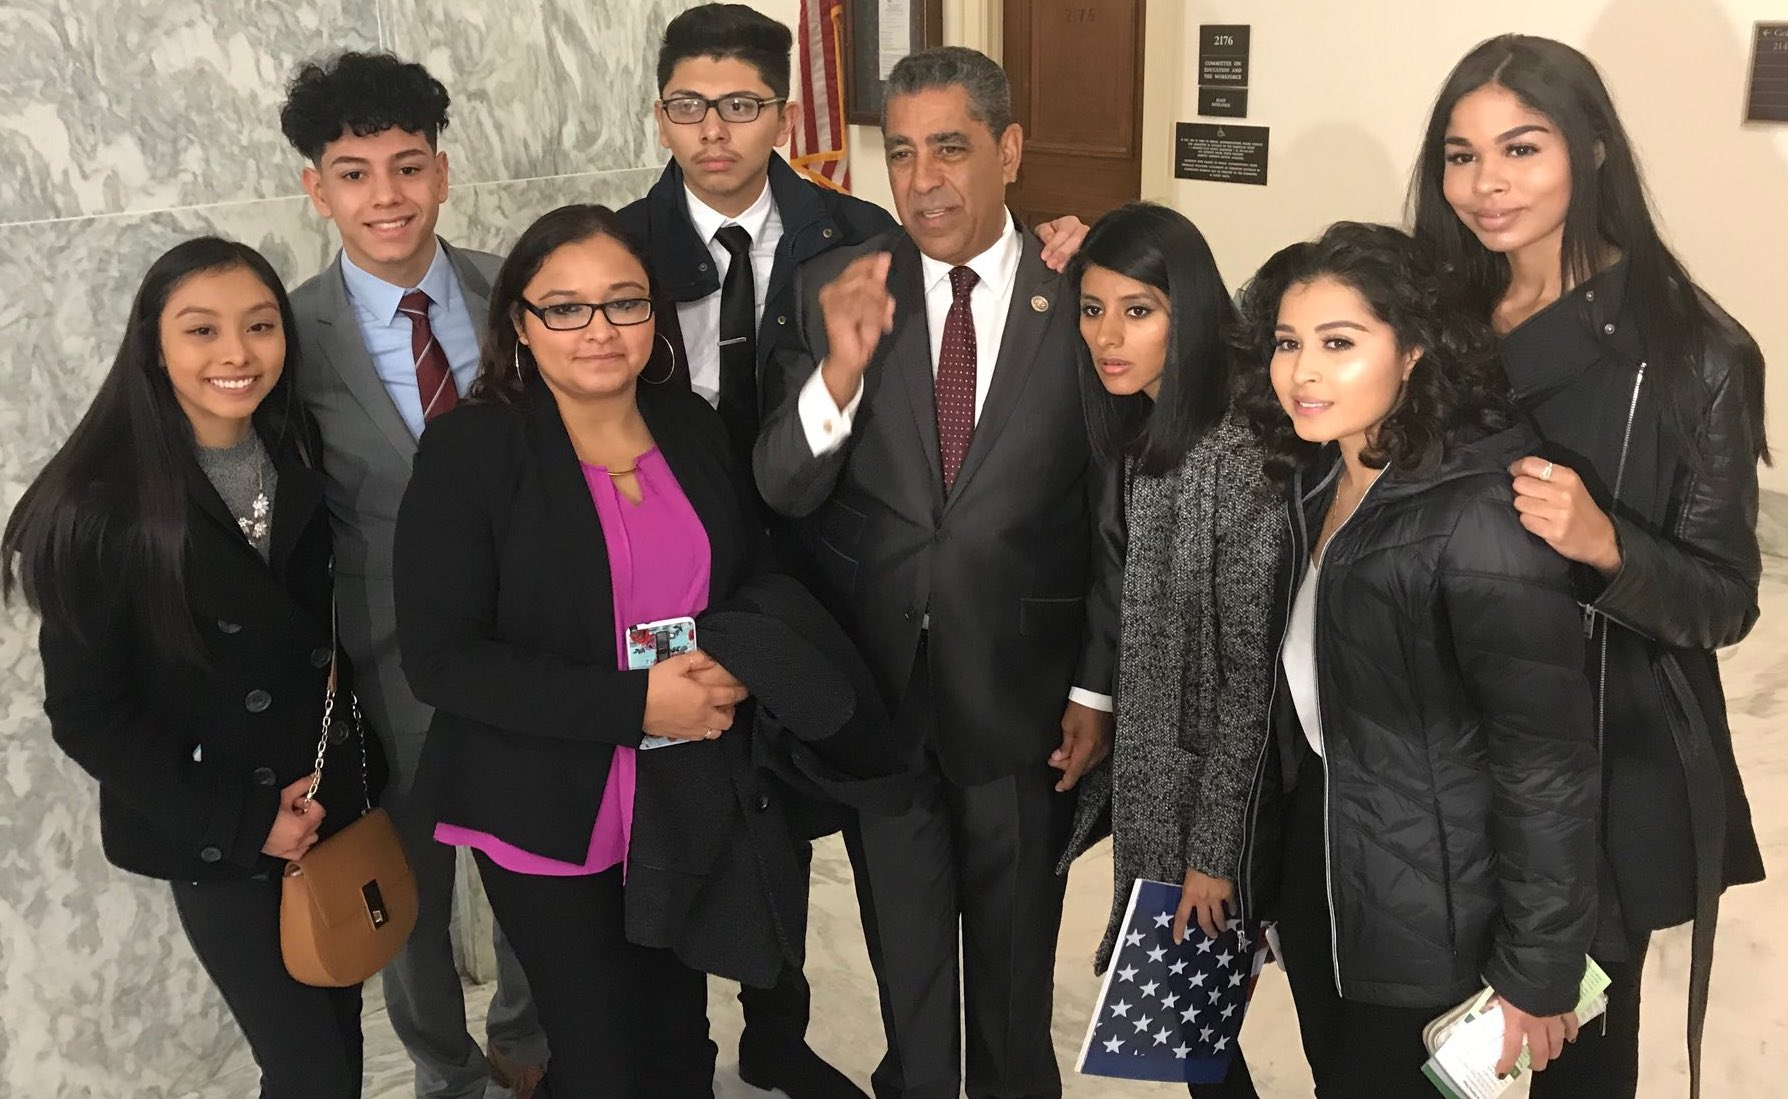 Three Lessons for Grassroots Advocates Rep. Espaillat Learned From DACA